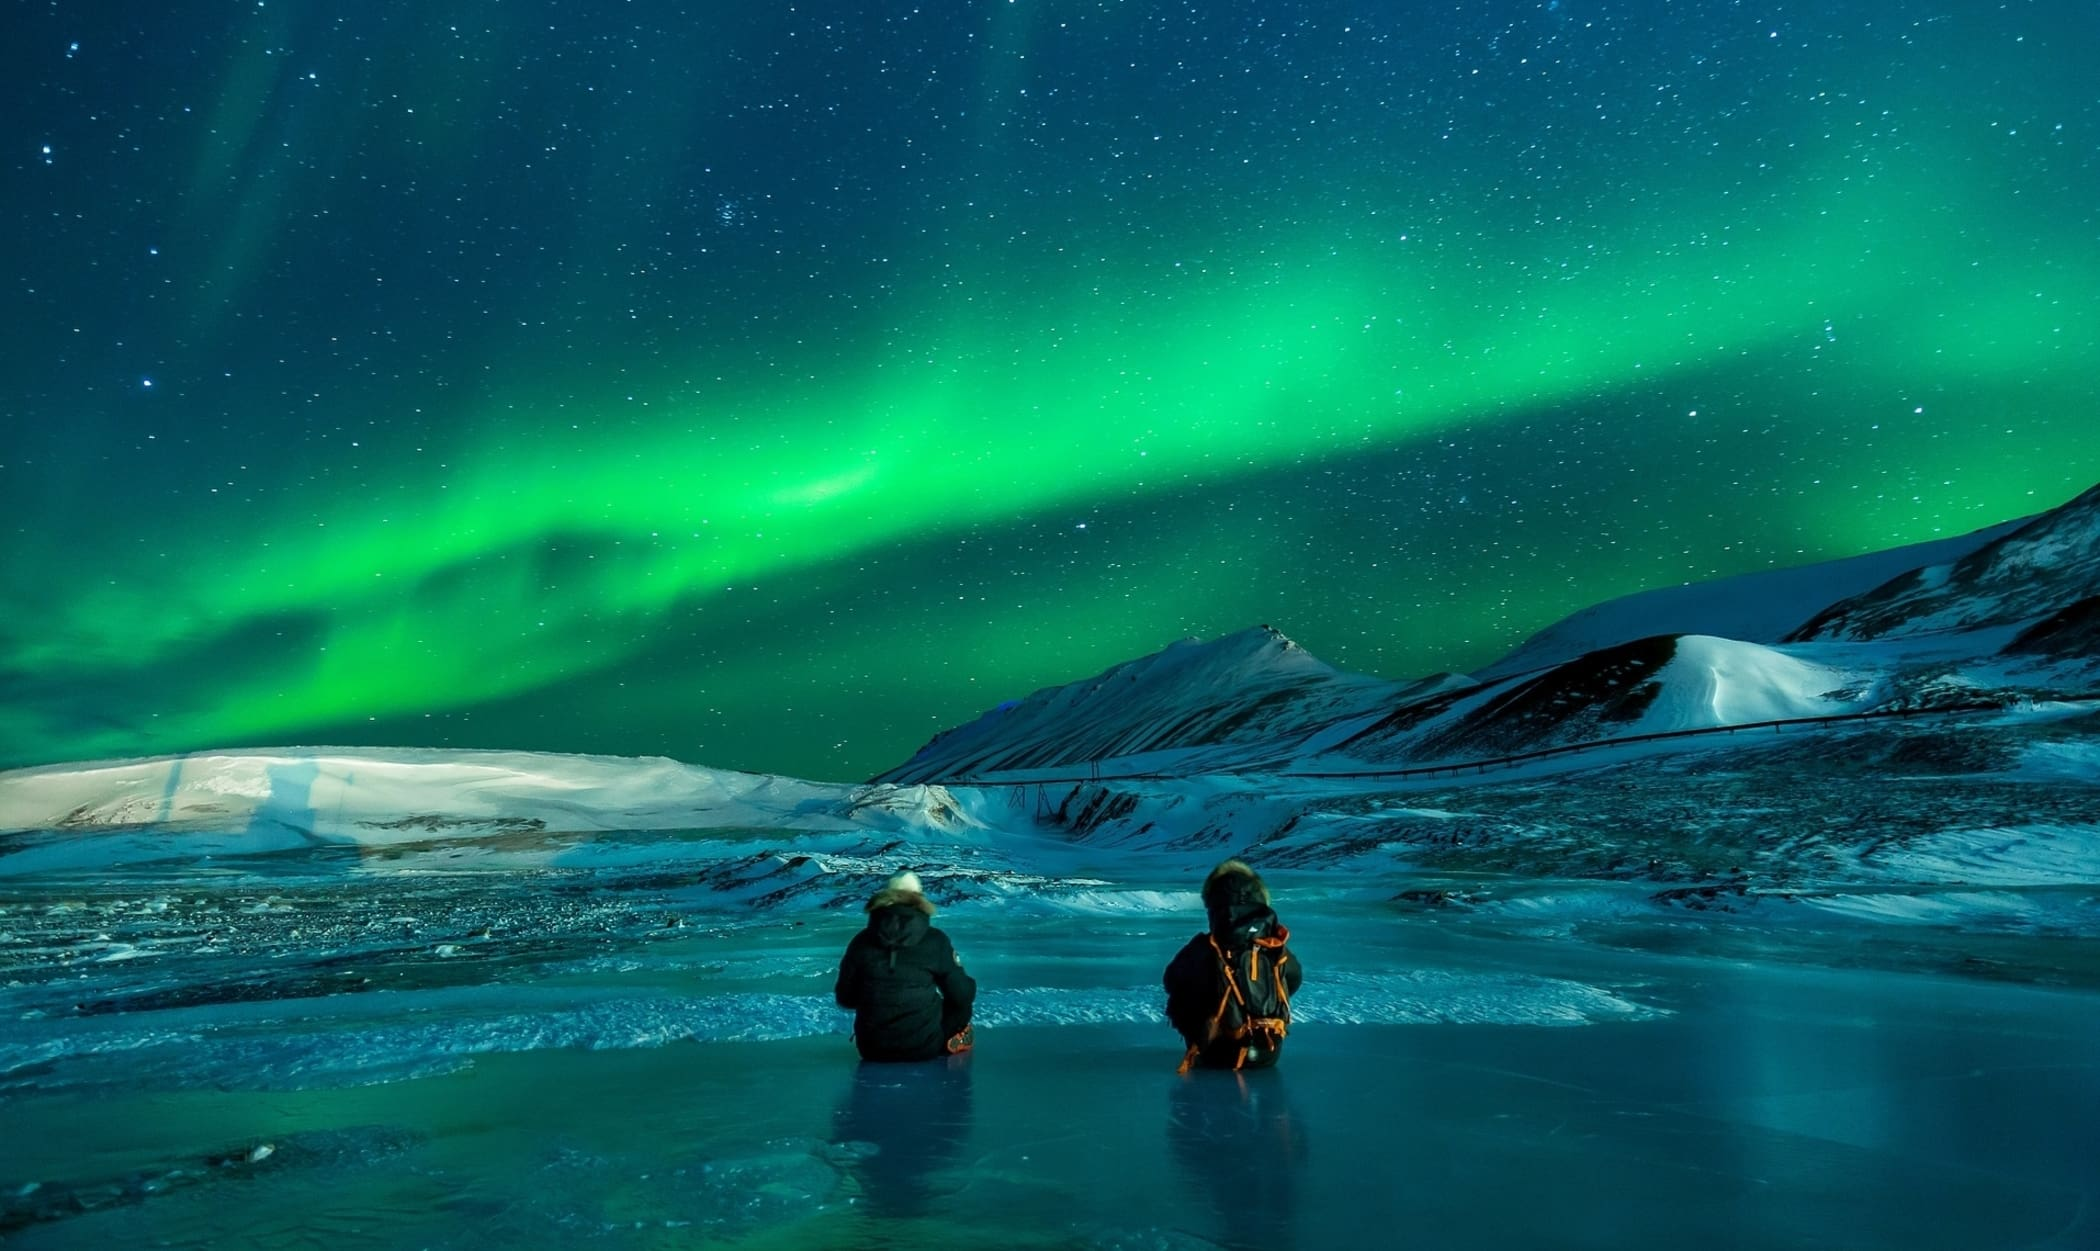 Northern Lights Lapland Wanderlust Trips